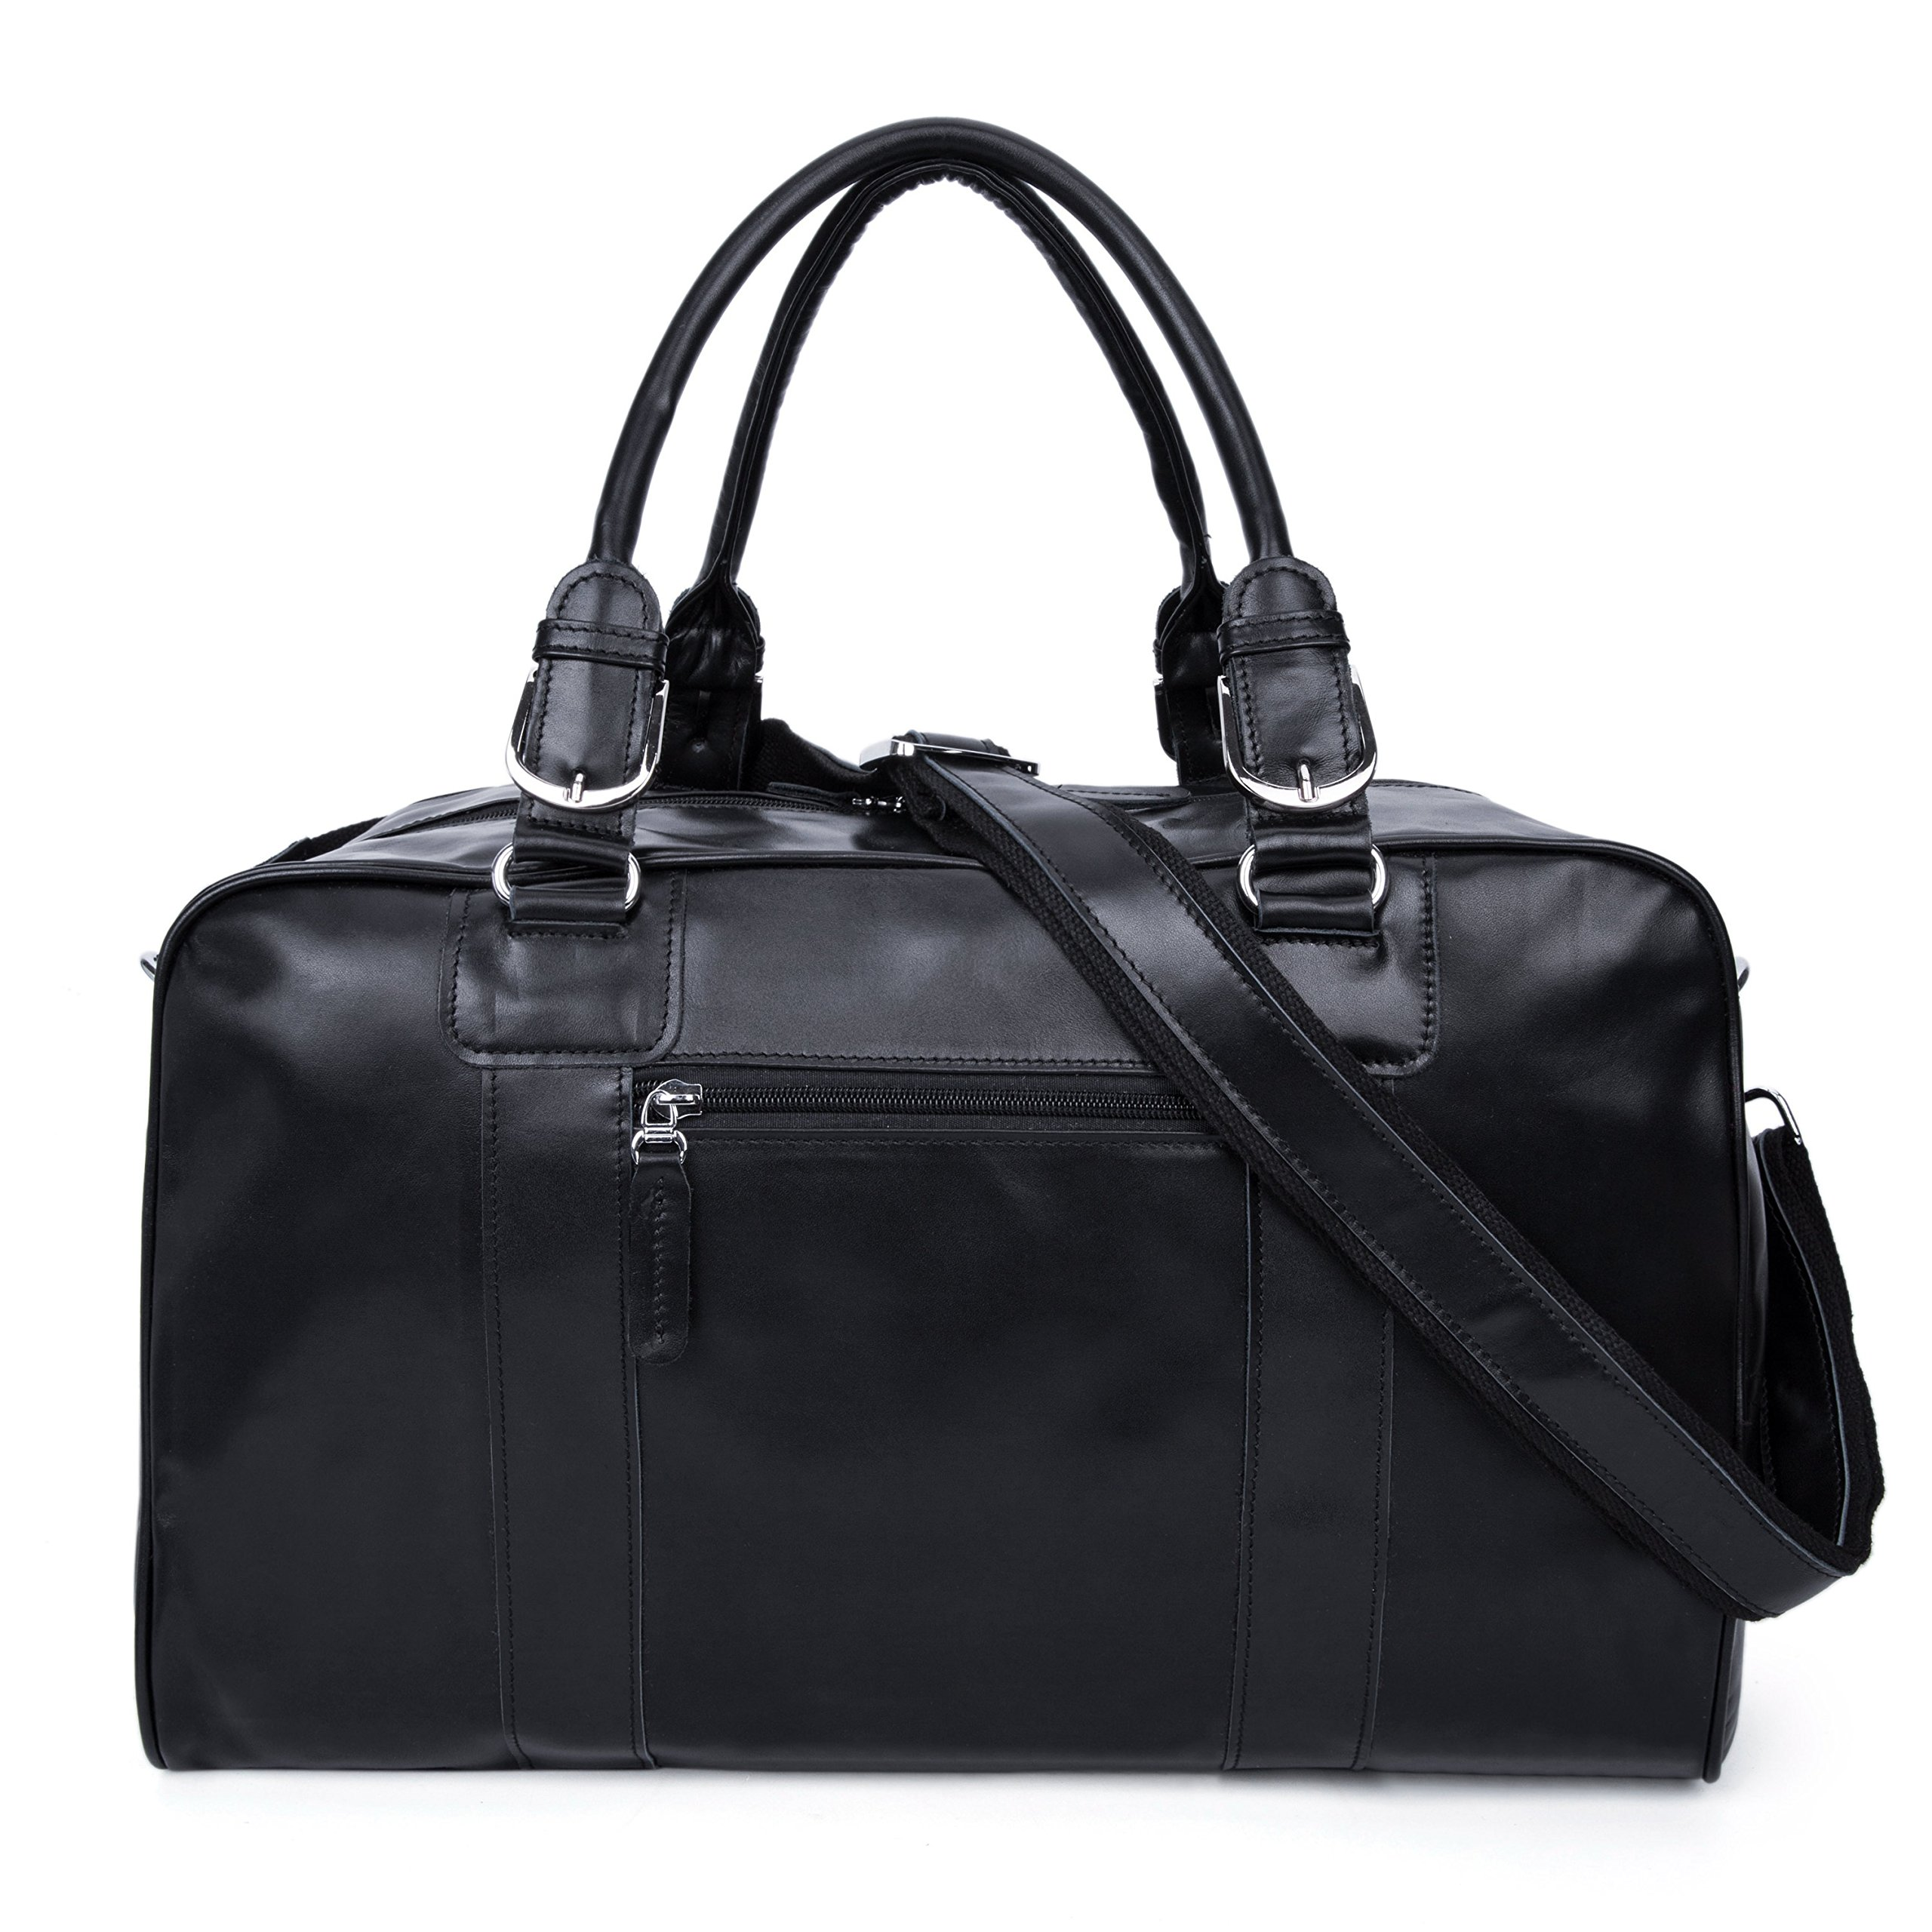 Huntvp Mens Genuine Leather Travel Duffel Bag Black Carry On Luggage Totes Gym Bags